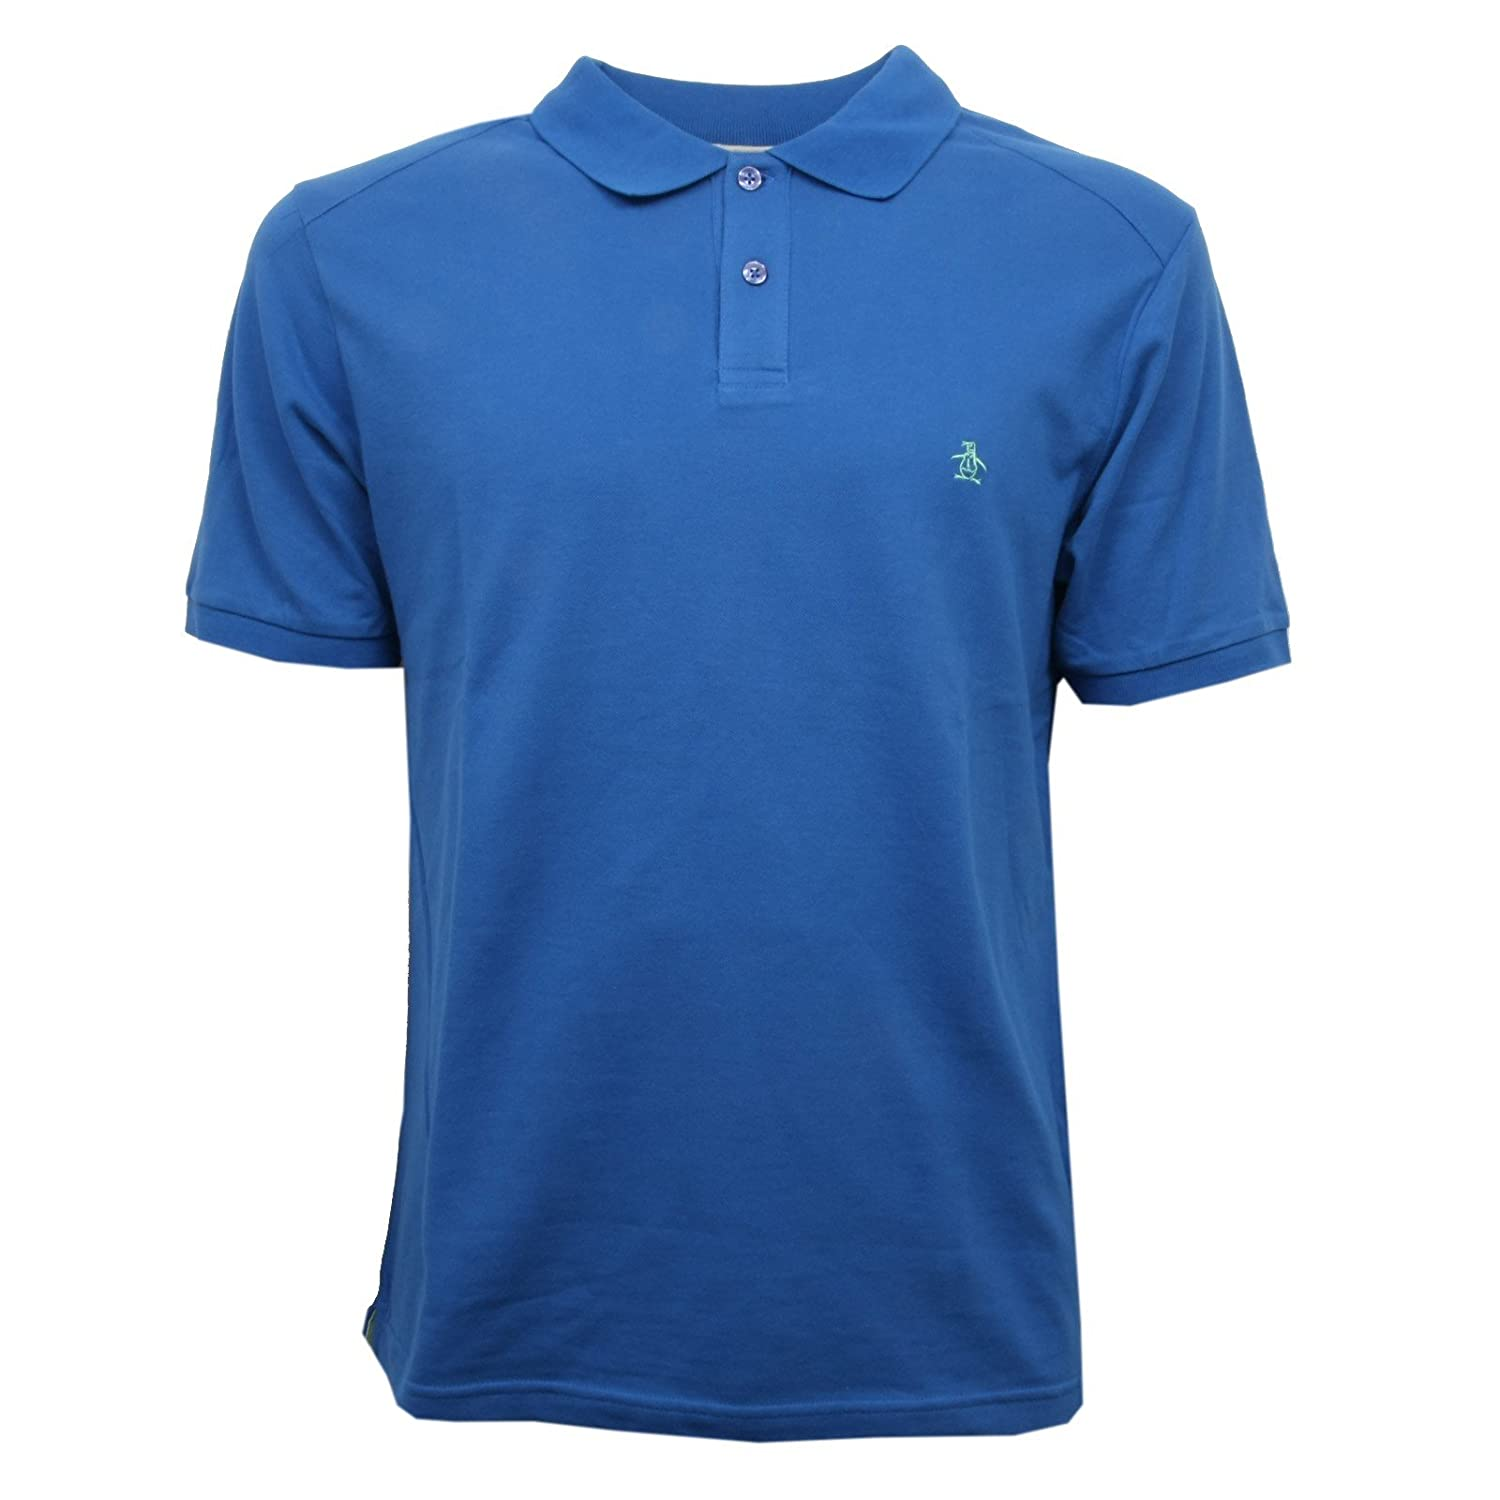 C7214 polo maglia uomo AN ORIGINAL PENGUIN blu t-shirt men: Amazon ...